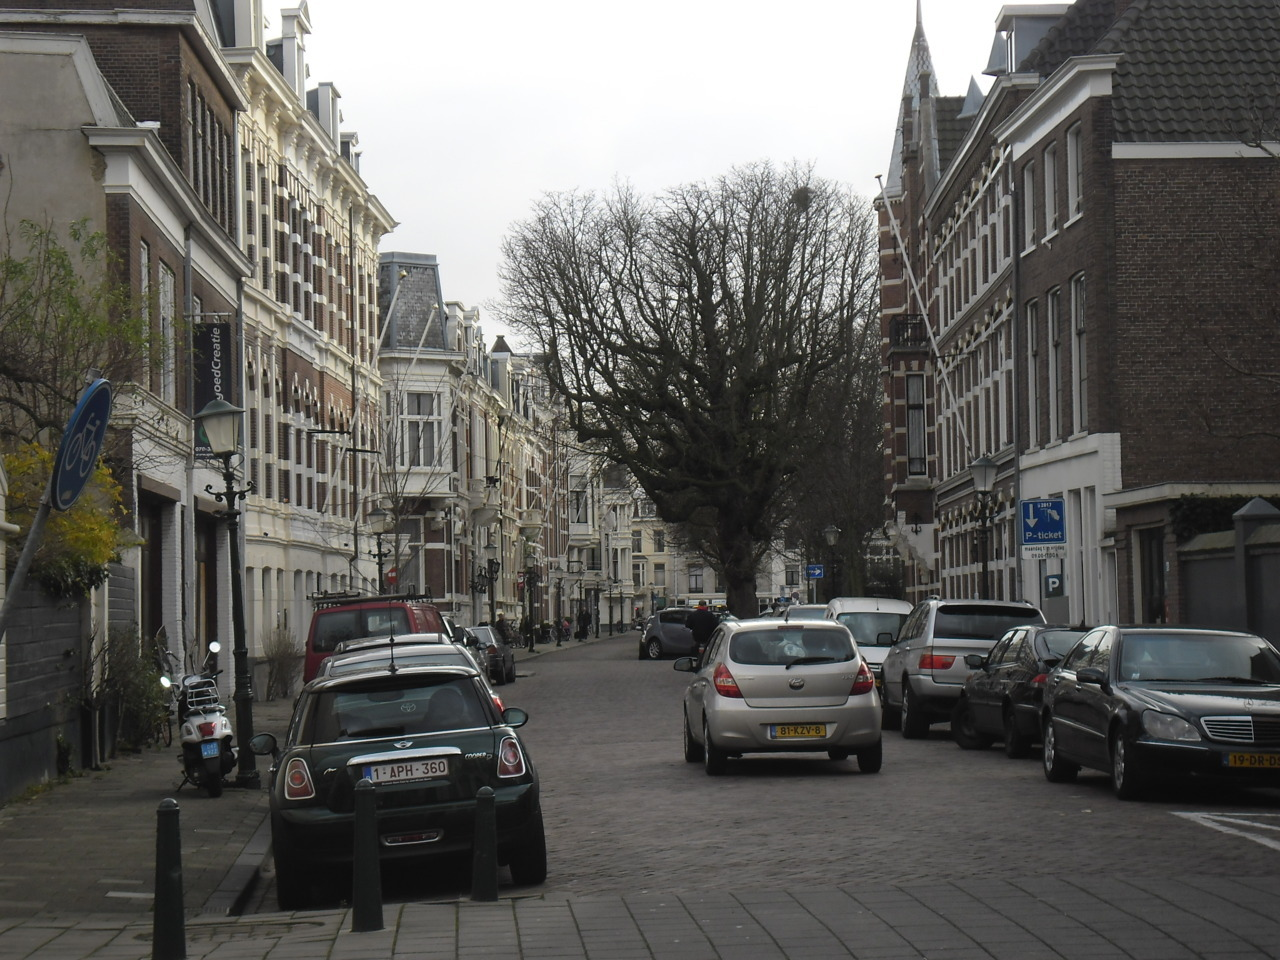 Street in The Hague (Den Haag), Netherlands. Photo taken by me, 7 December 2011.